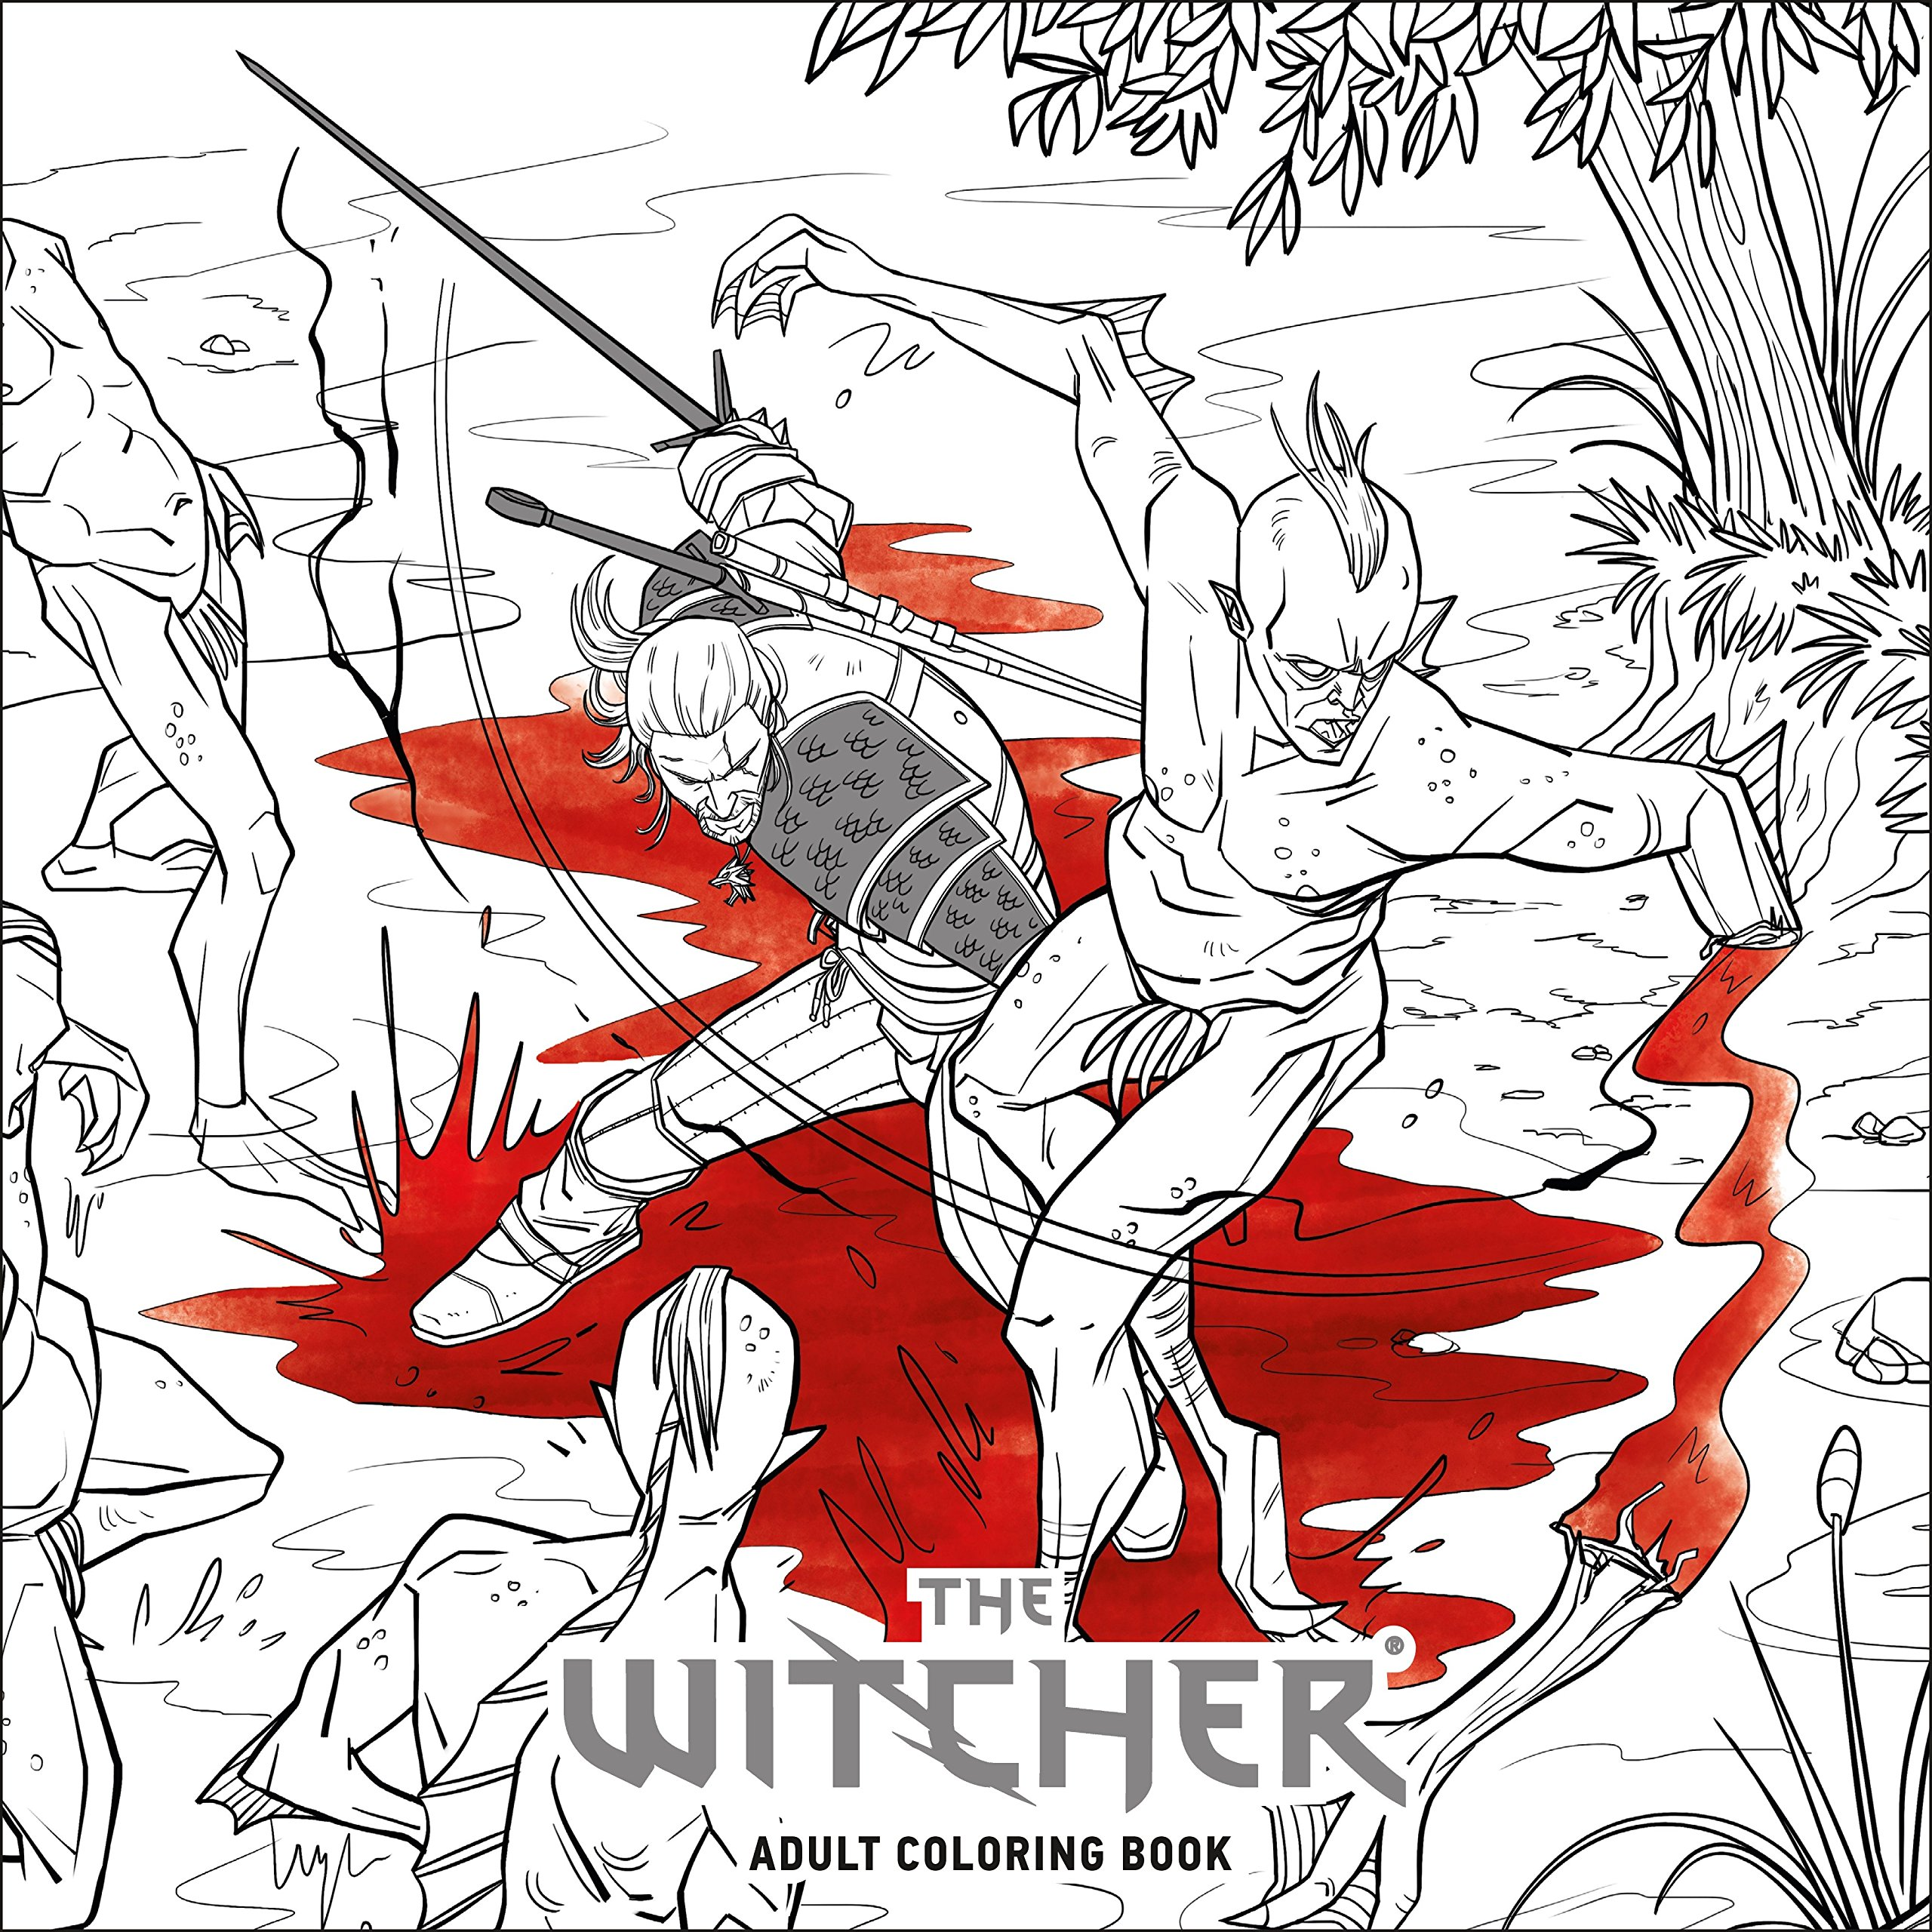 Amazon.com: The Witcher Adult Coloring Book (9781506706375): CD ...